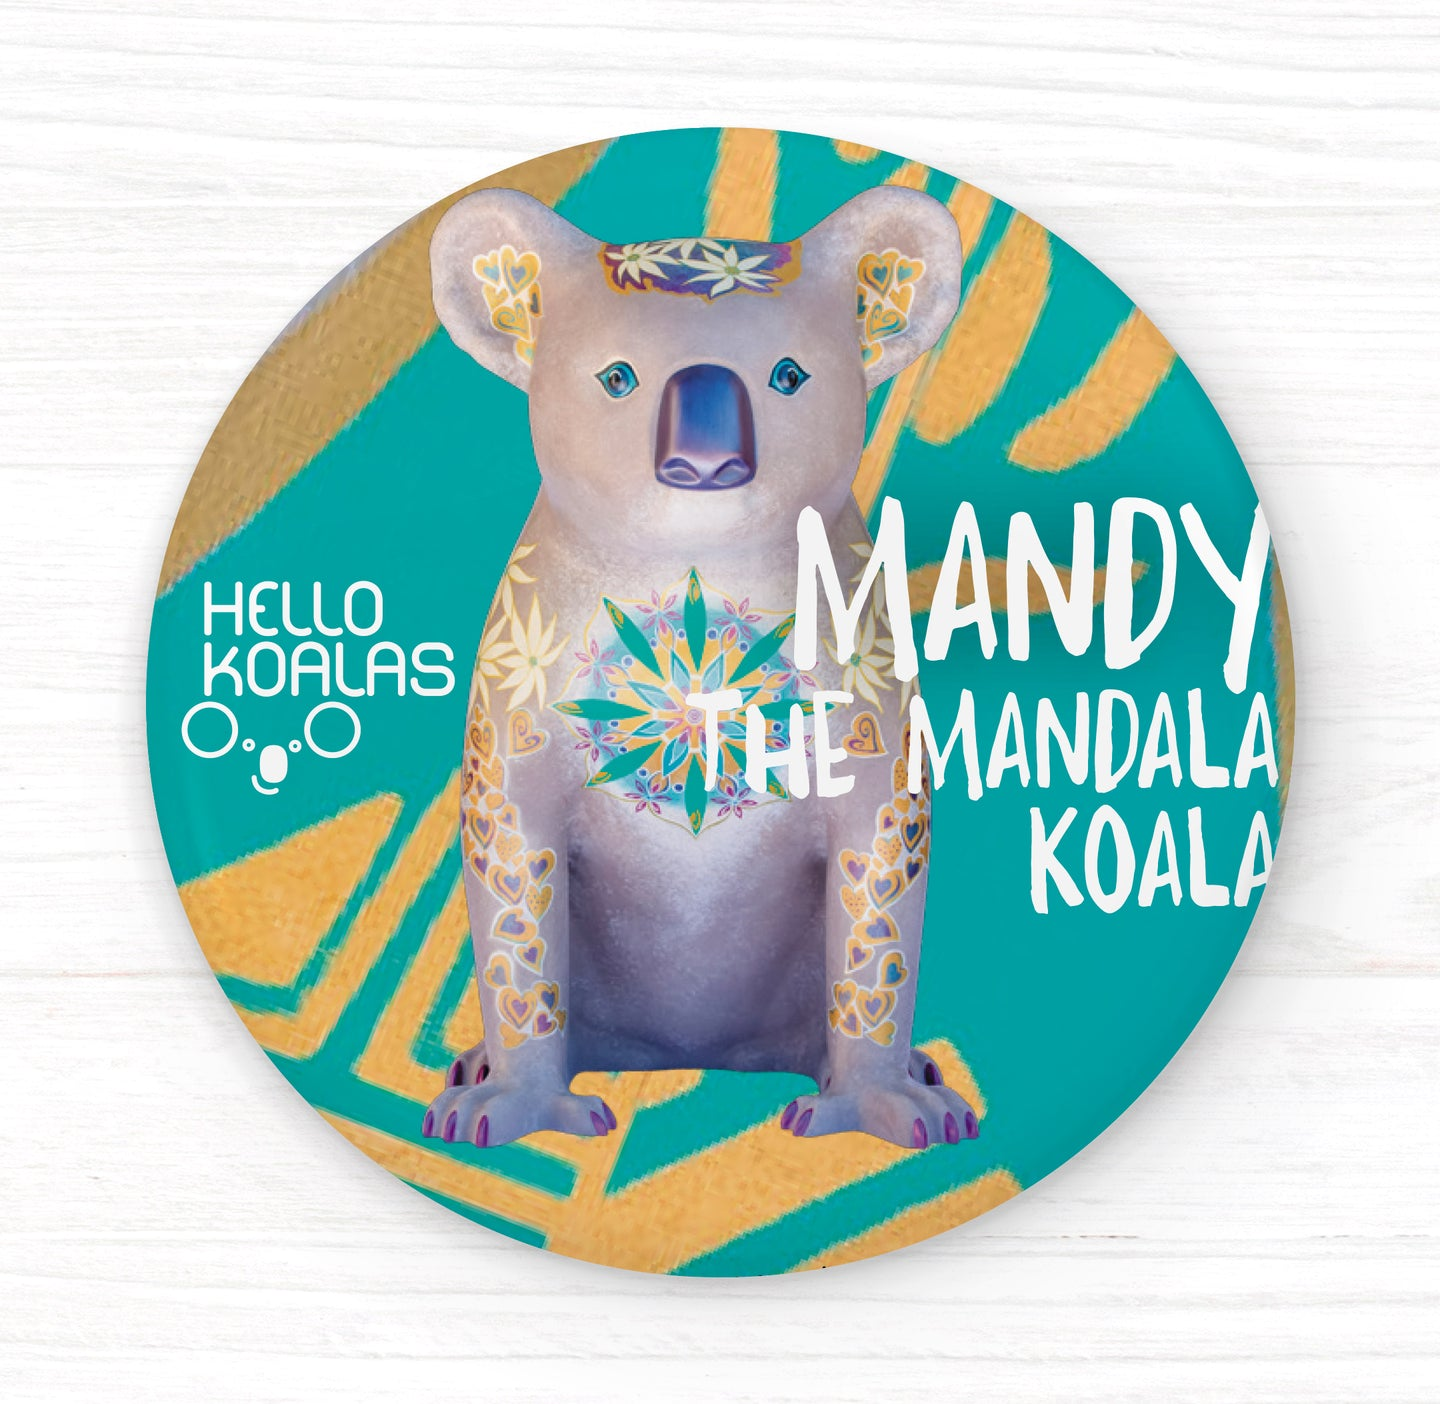 Hello Koalas Mandy The Mandala Koala Magnet